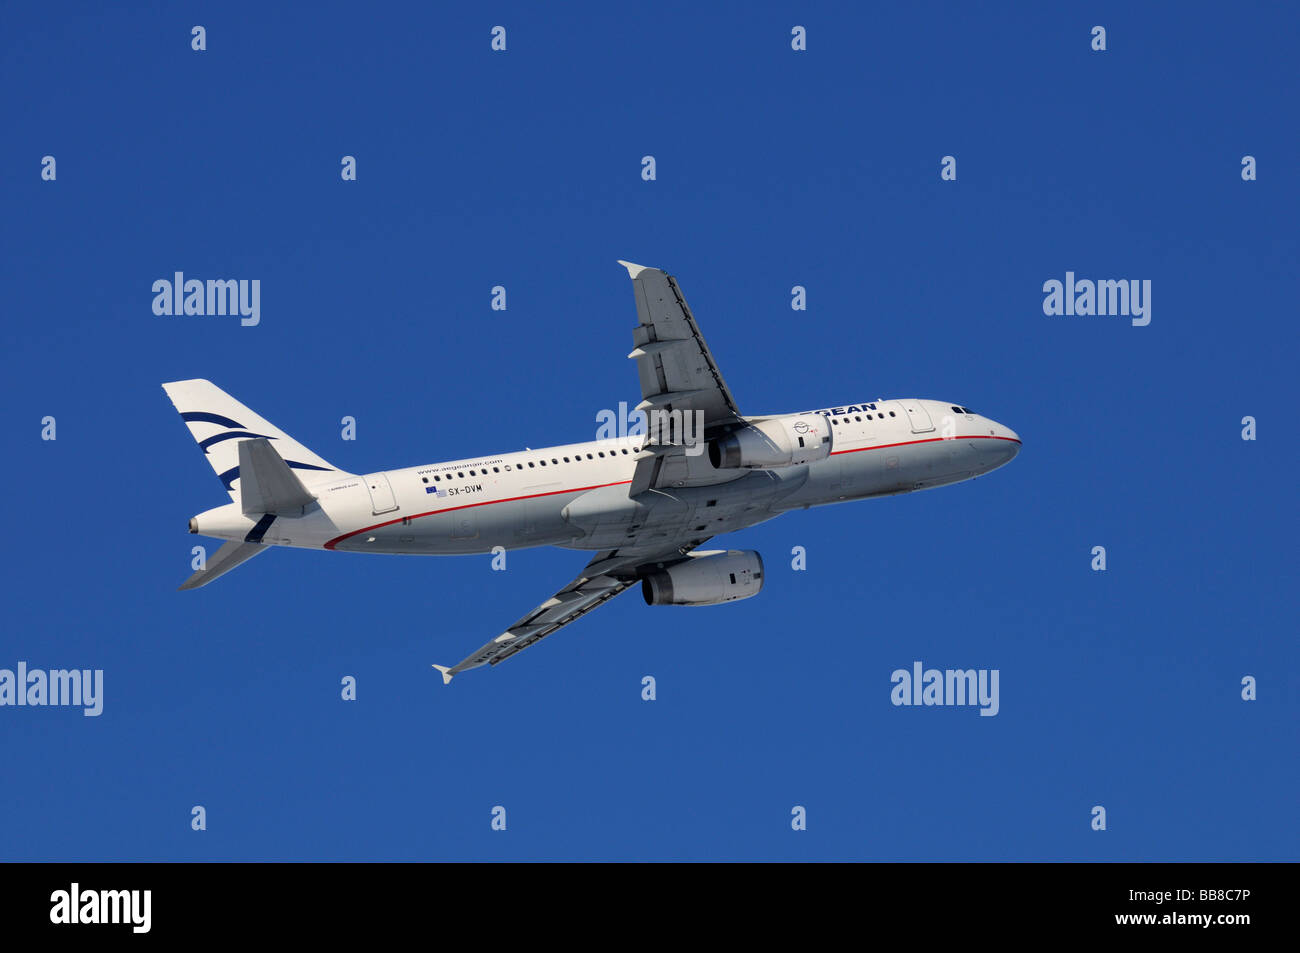 Commercial aircraft, Aegean Airlines, Airbus A320-200, climbing against a steel-blue sky - Stock Image